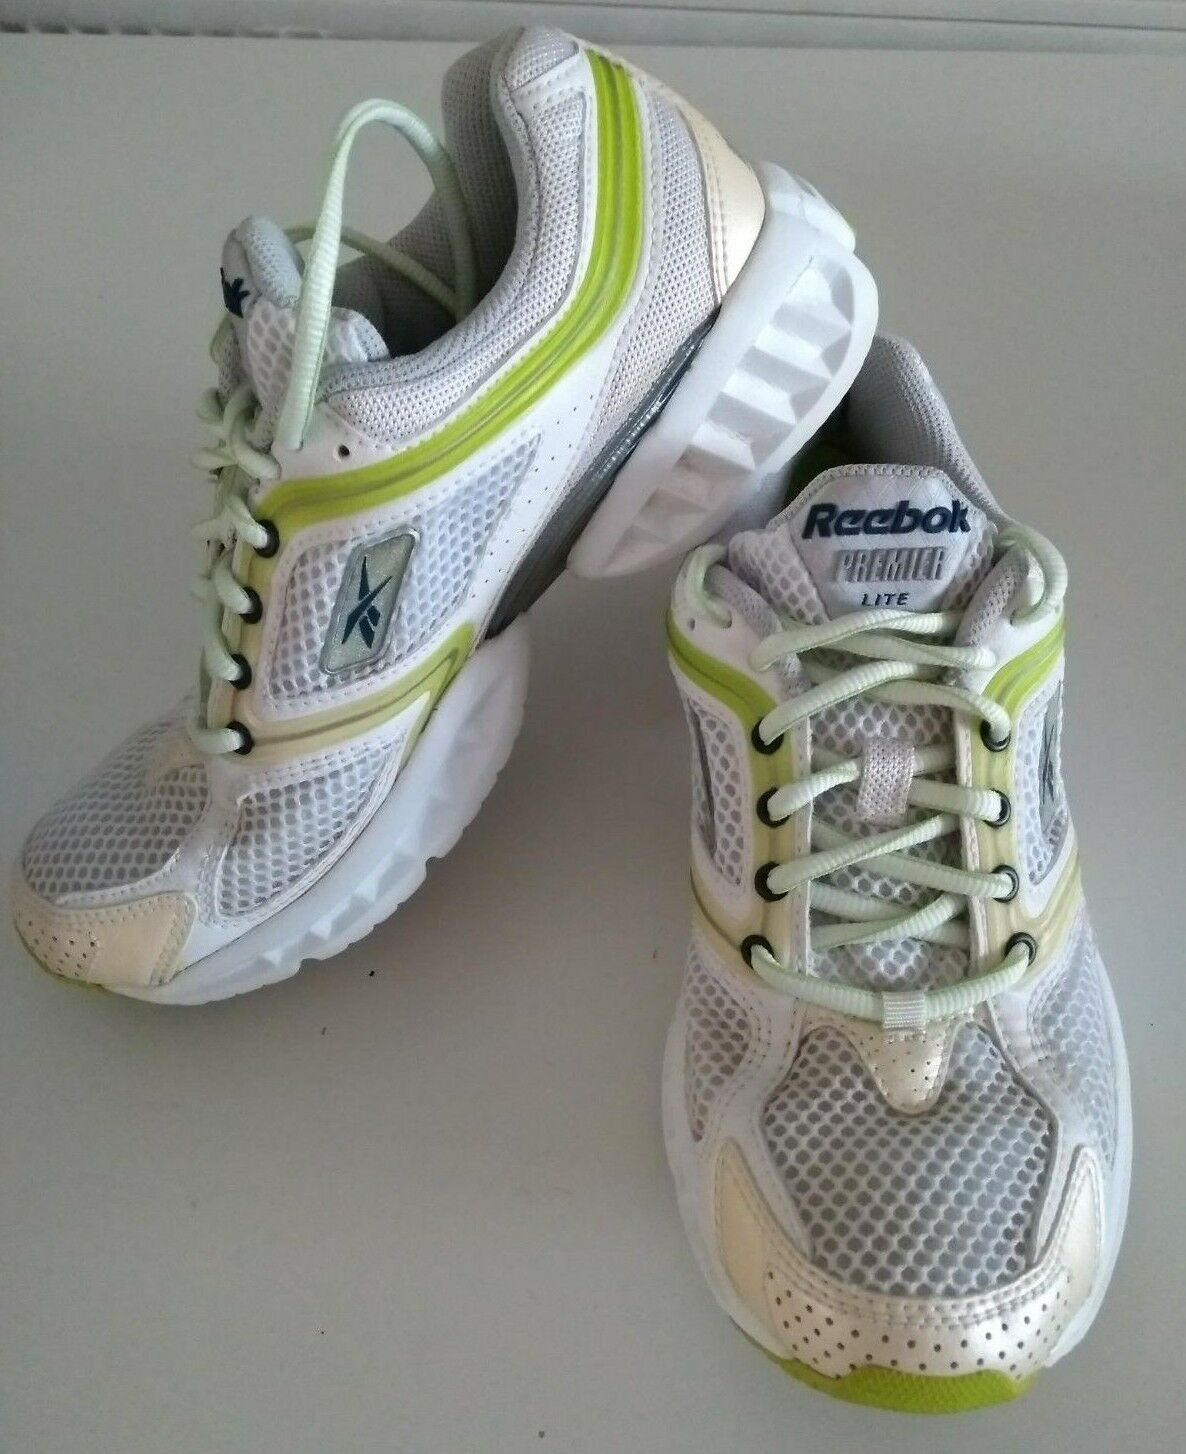 REEBOX PREMIER LITE RUNNING ULTRALITE TRAINER WHITE SHOES SIZE